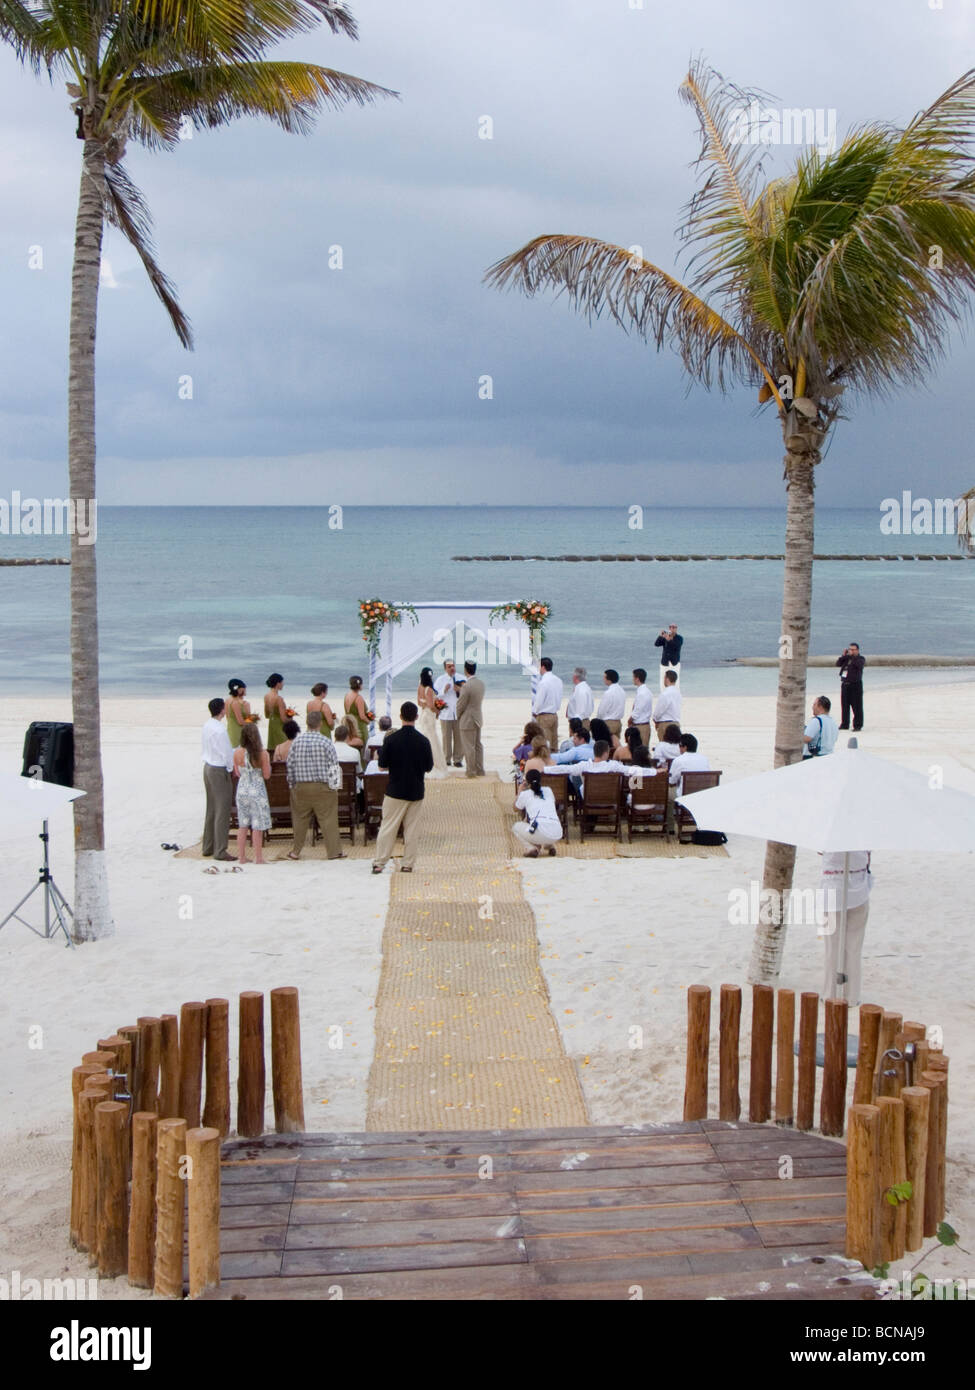 Wedding on the beach - Stock Photo Wedding On The Beach At A Resort Hotel In Cancun Quintana Roo Mexico 2009 David H Wells The Image Works